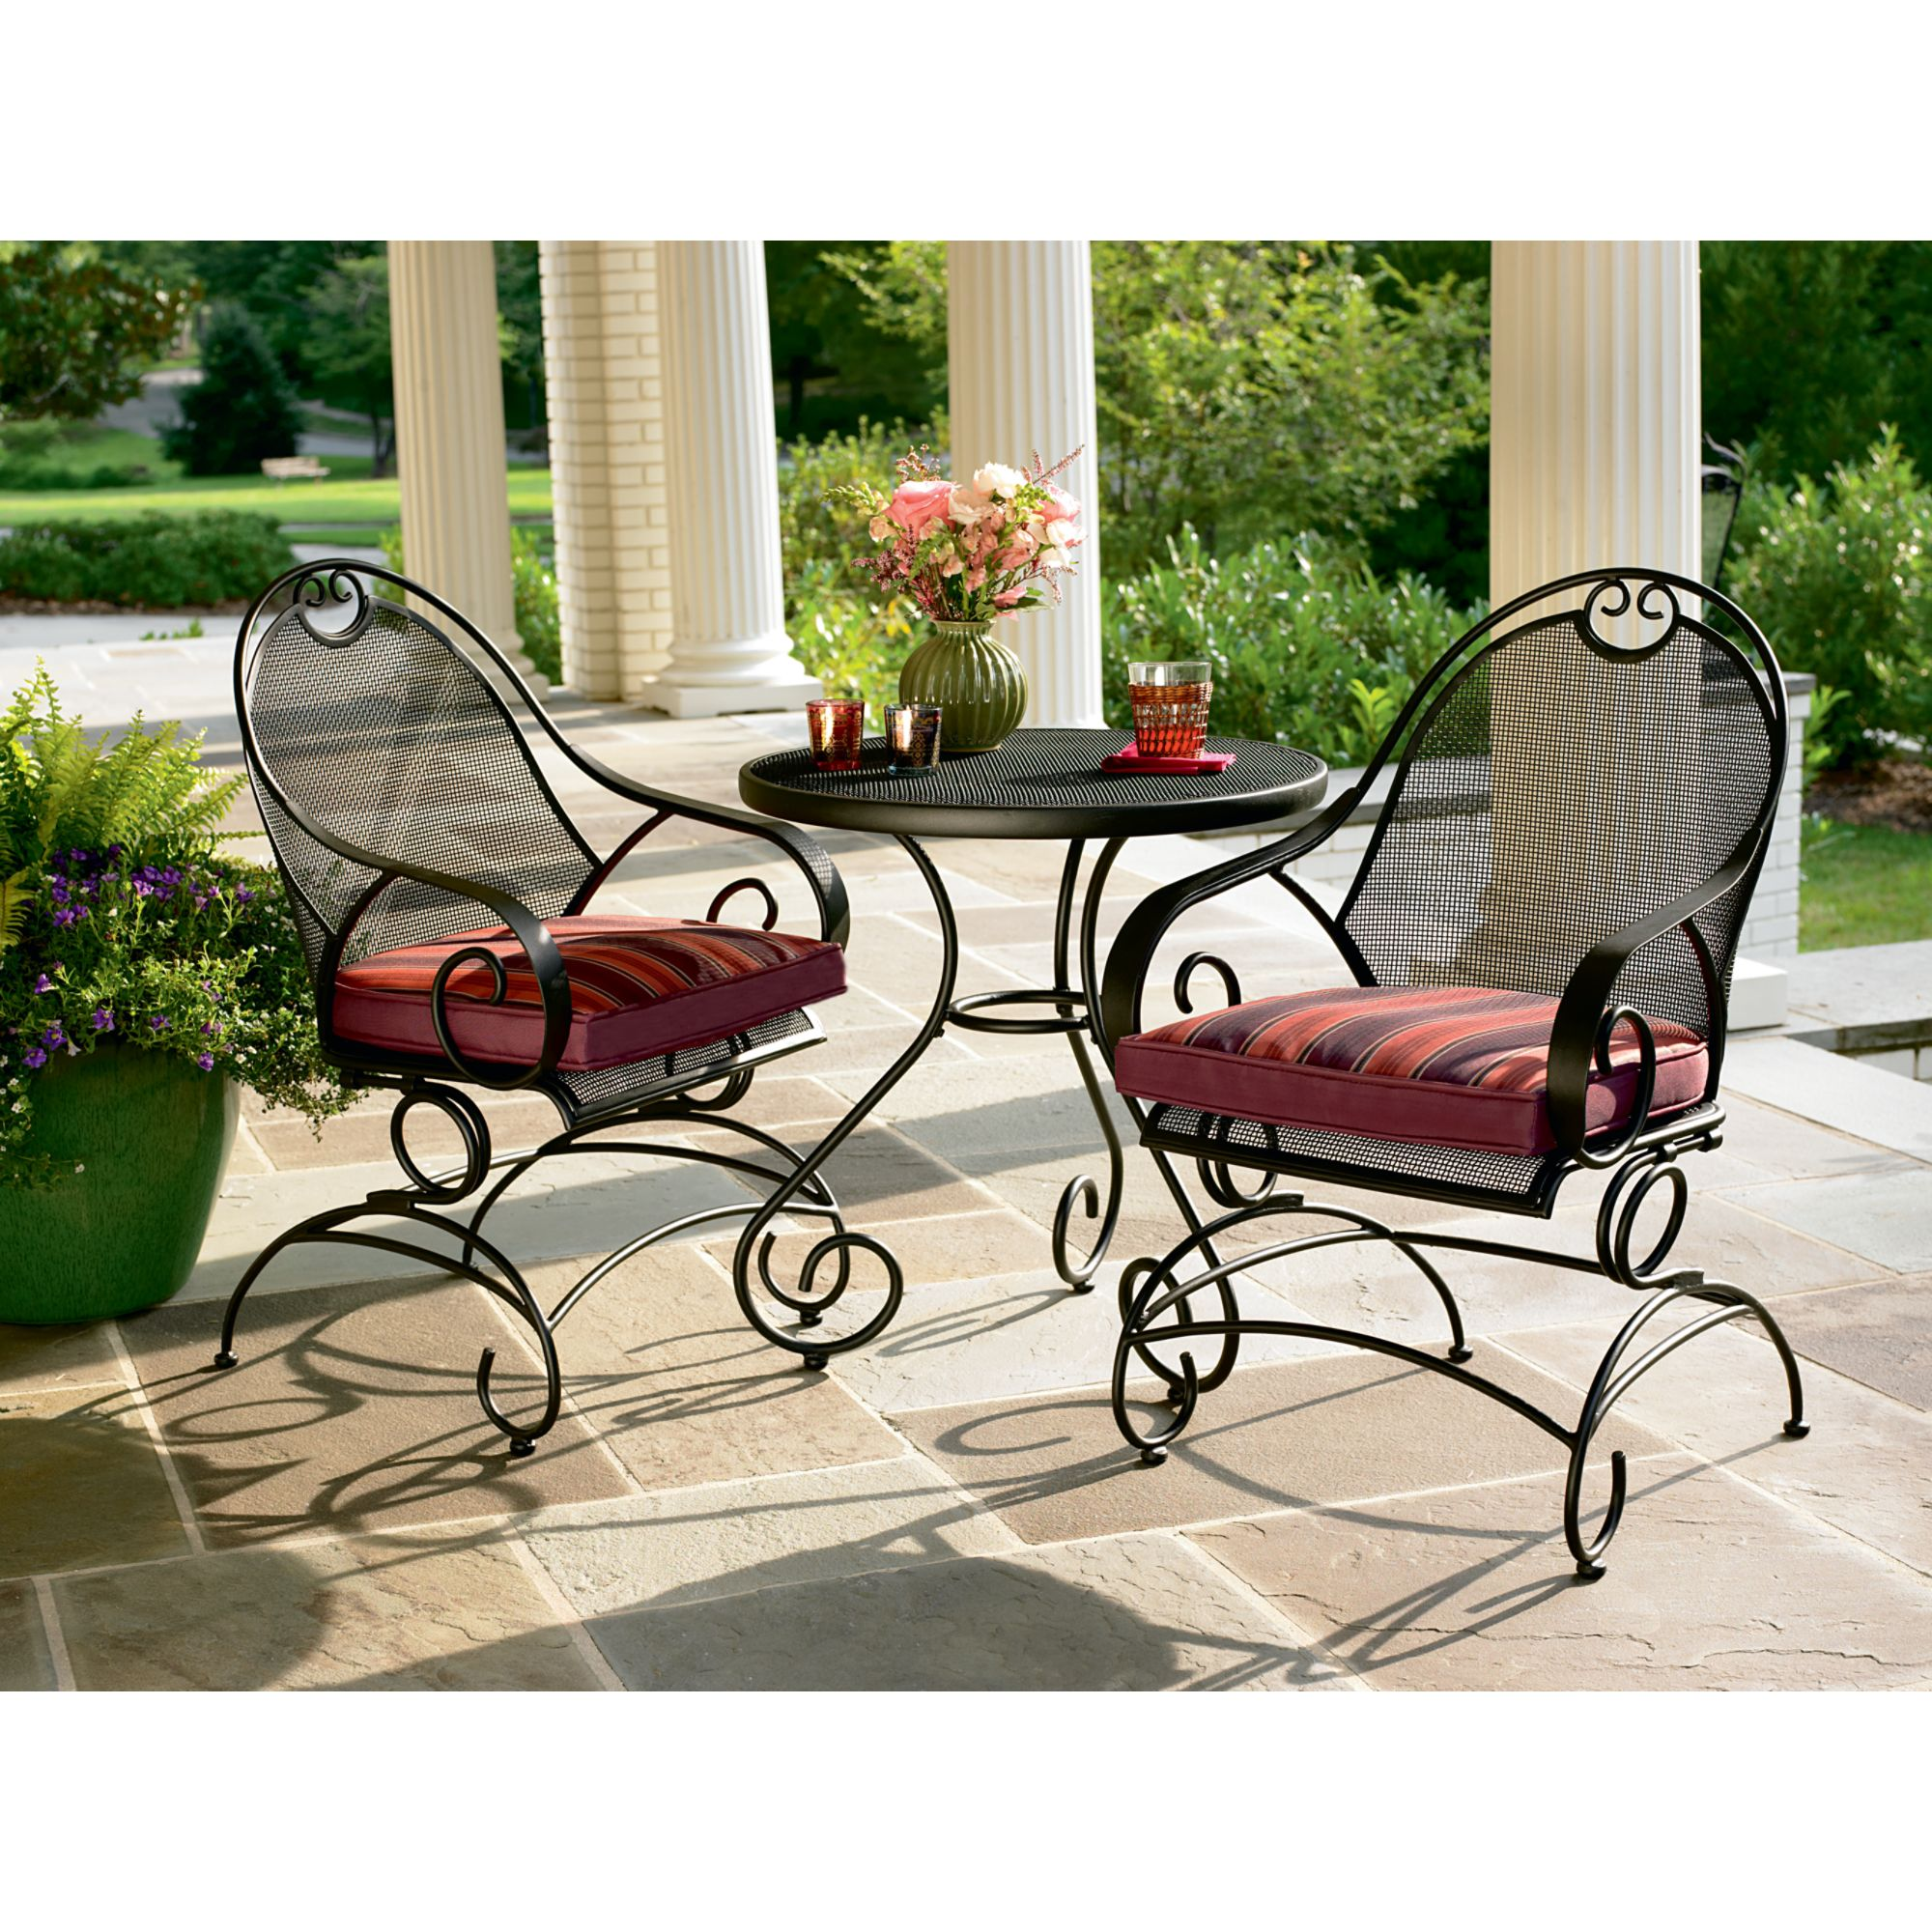 Wrought Iron 3 Piece Outdoor Setting Country Living 3 Piece Bistro Set Enjoy Your Outdoors